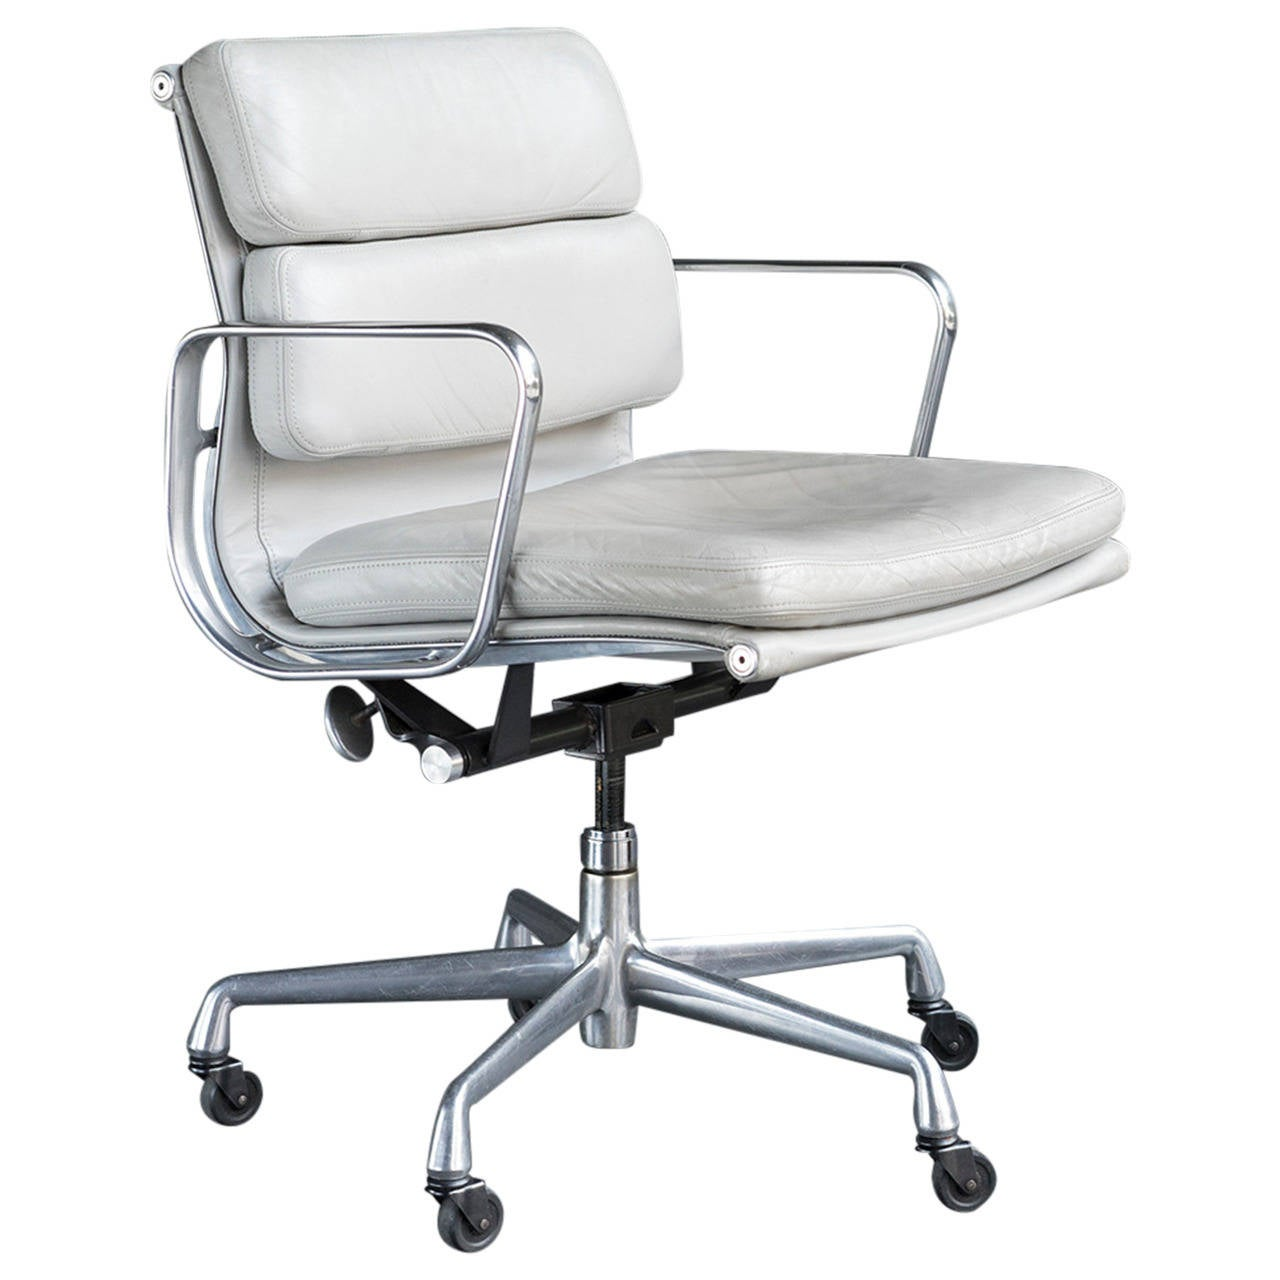 Eames Soft Pad Management Chair Eames Soft Pad Management Chair At 1stdibs